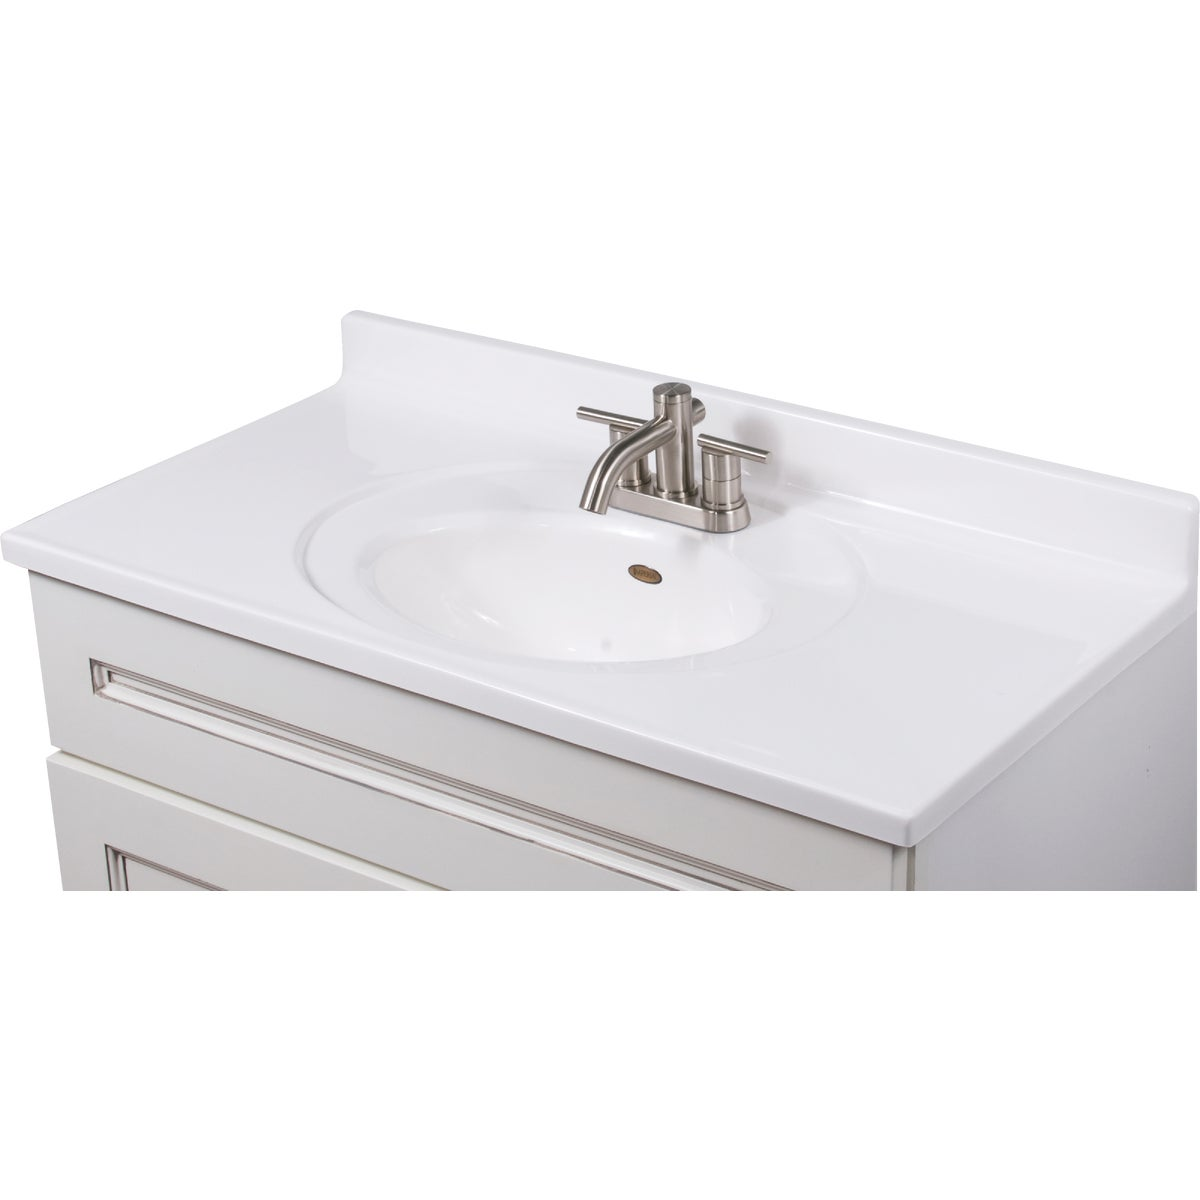 37X19 WHT VANITY TOP - VS3719SPW by Imperial Marble Corp